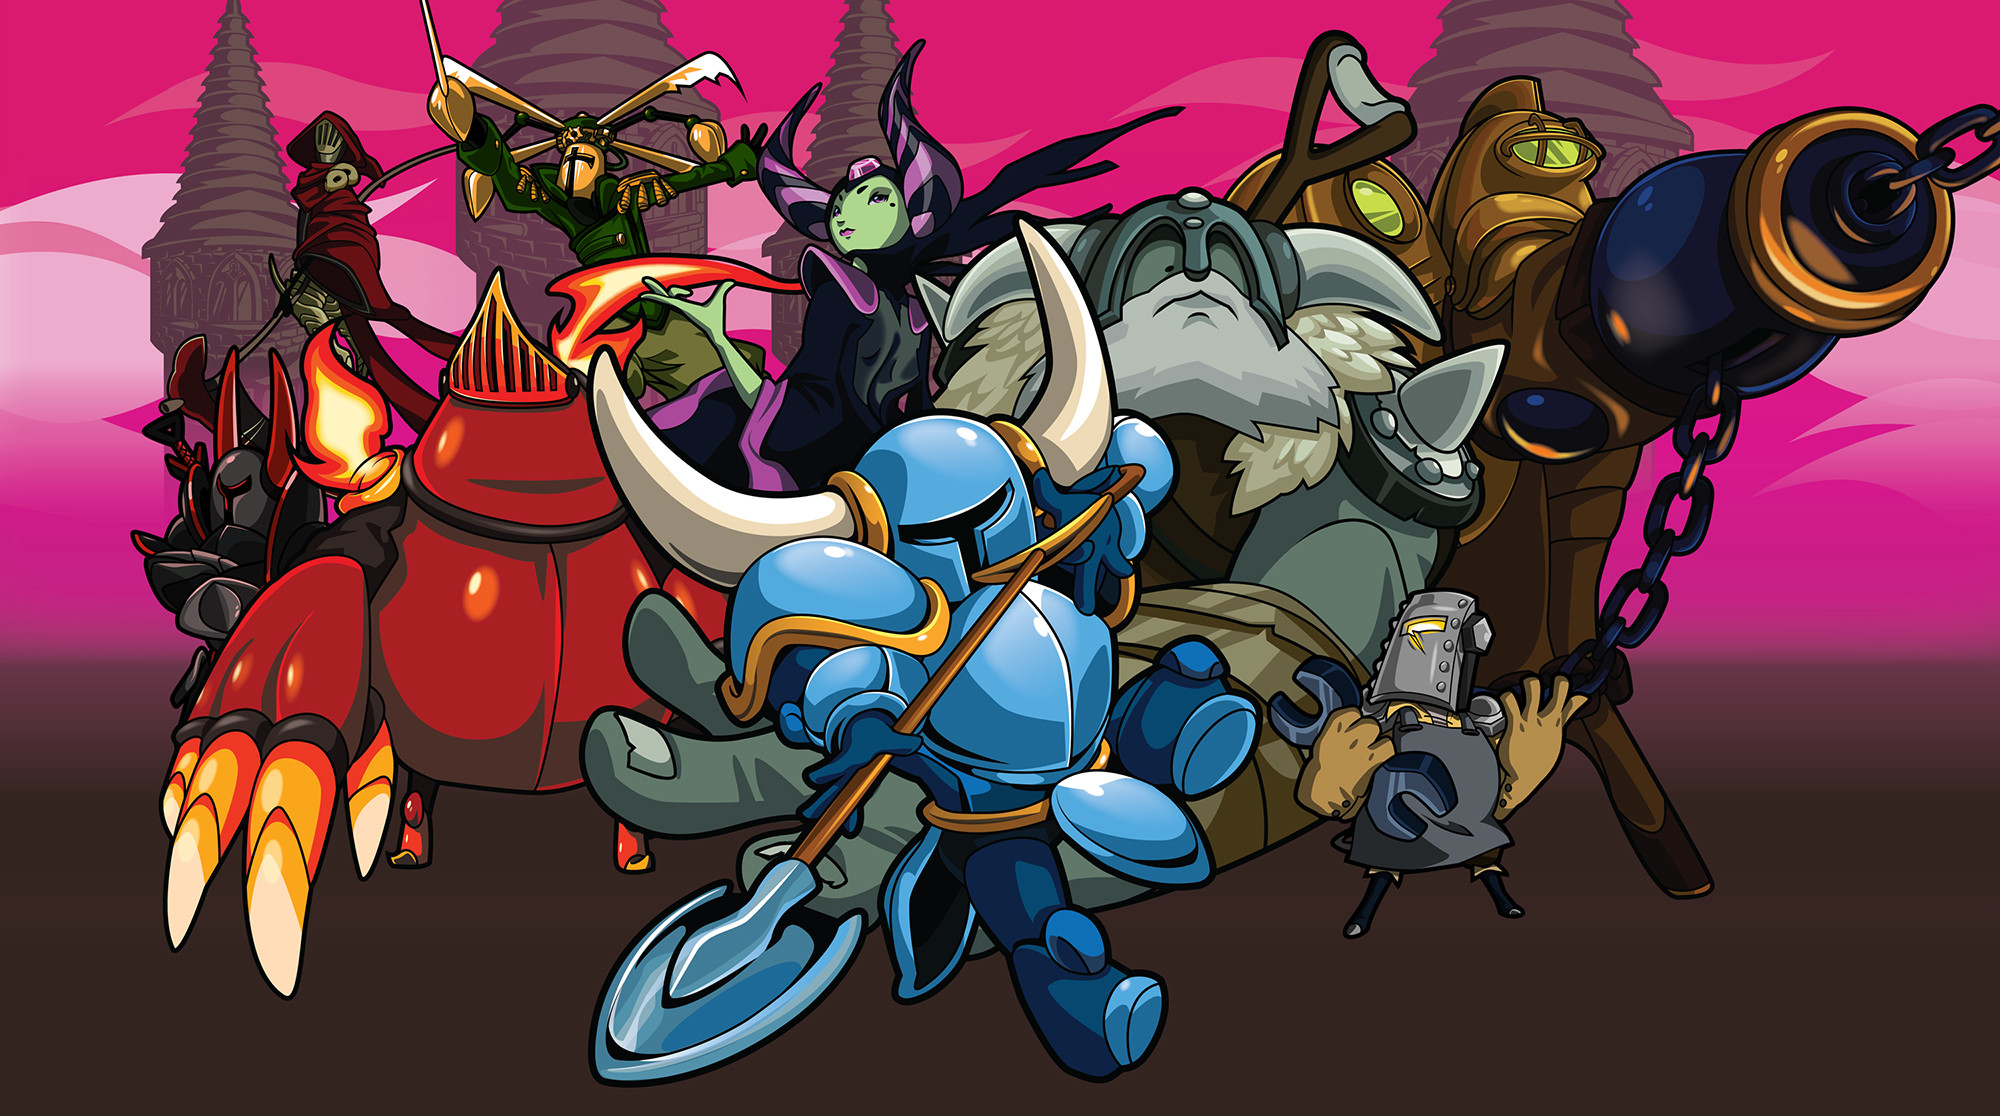 Shovel Knight's Nintendo Switch release will include big changes